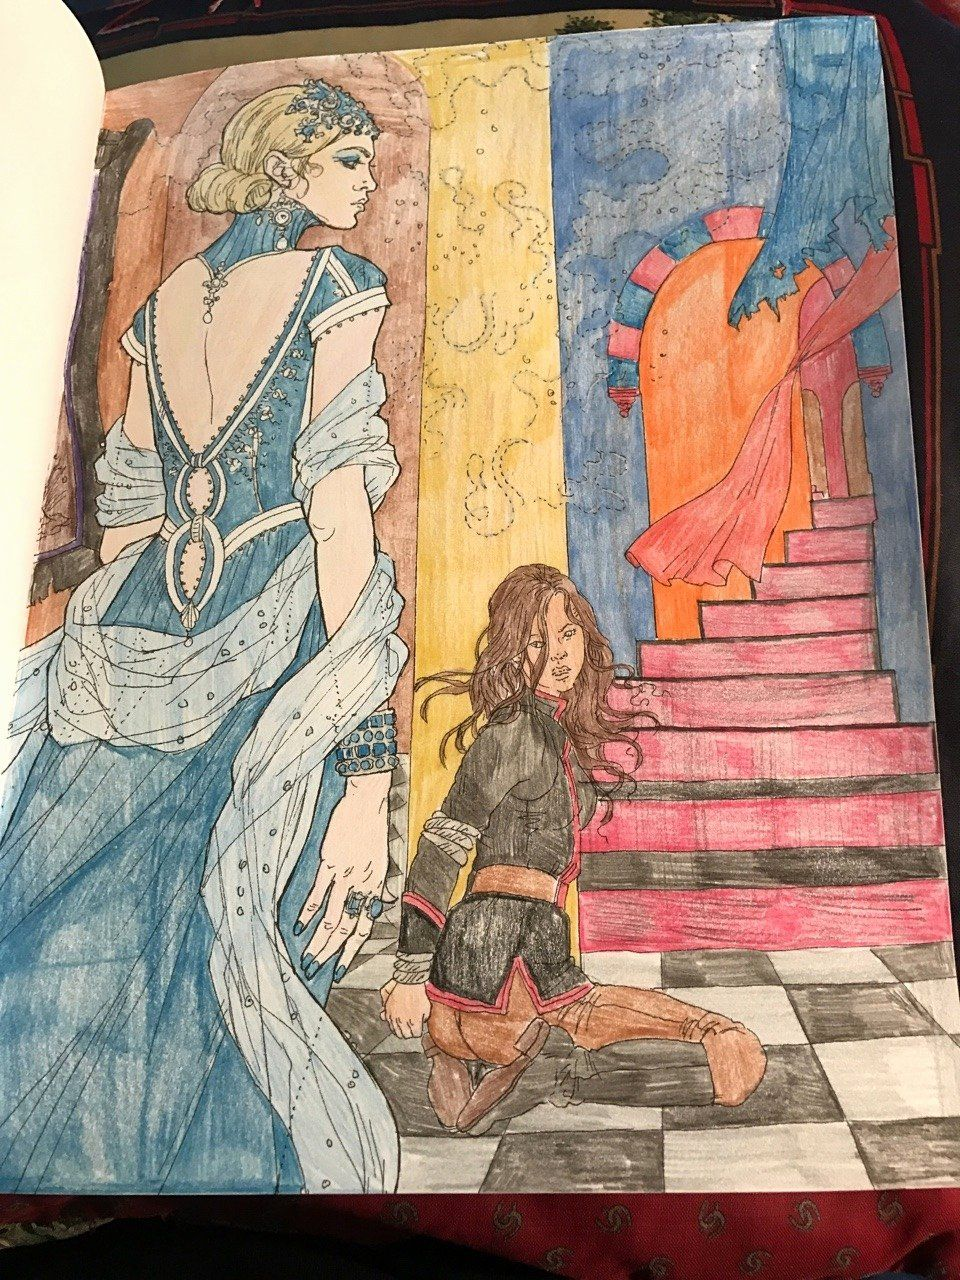 Red Queen Coloring Book Best Of The Dauntless Mockingjay Mare Barrow Apprehended In The Red Queen Red Queen Red Queen Victoria Aveyard The Red Queen Series